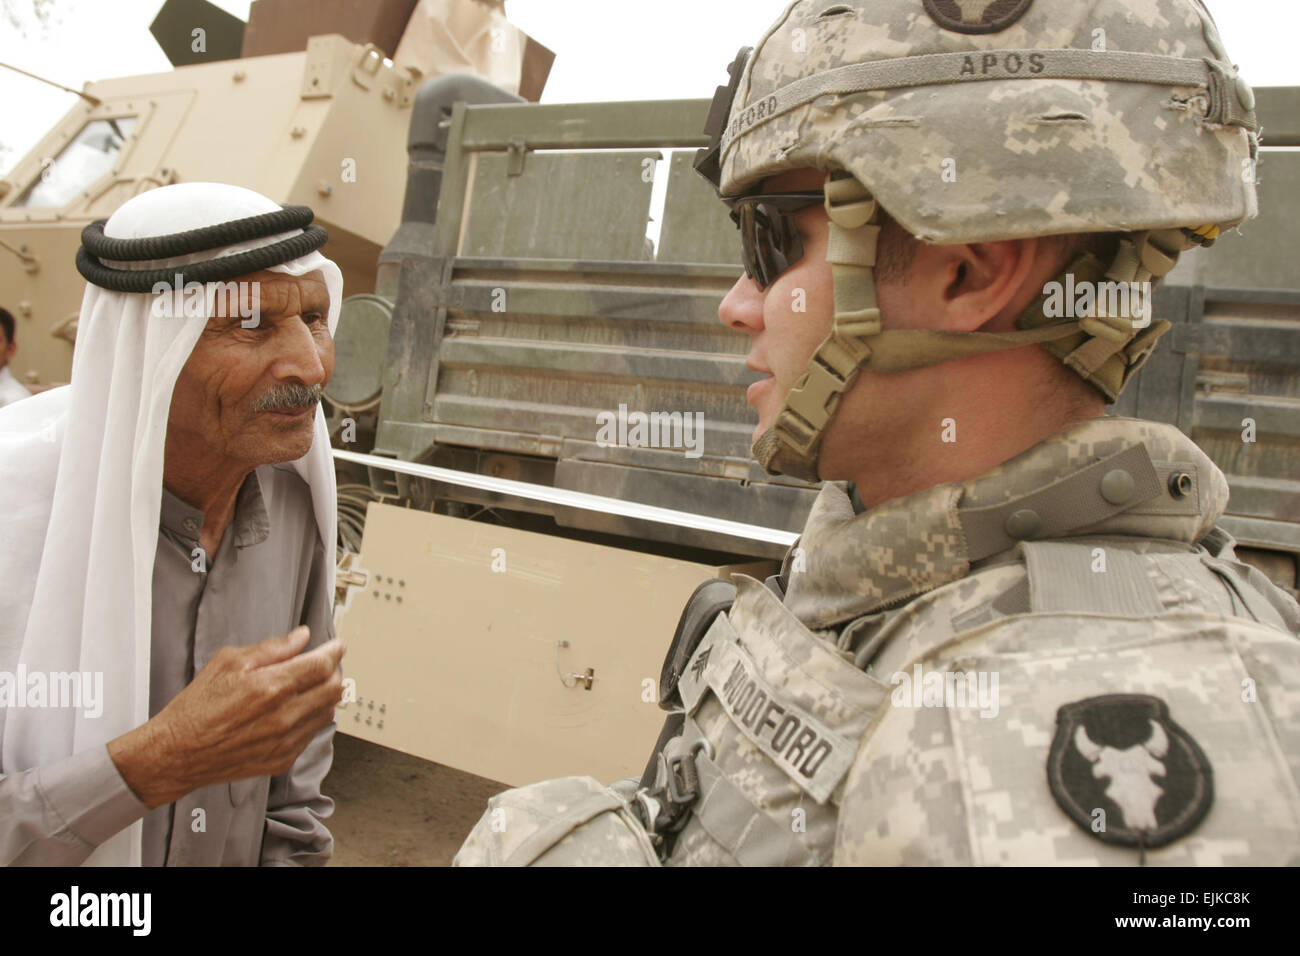 U.S. Army Sgt. Jeff Woodford speaks with an Iraqi man waiting to receive medical care during a cooperative medical - Stock Image